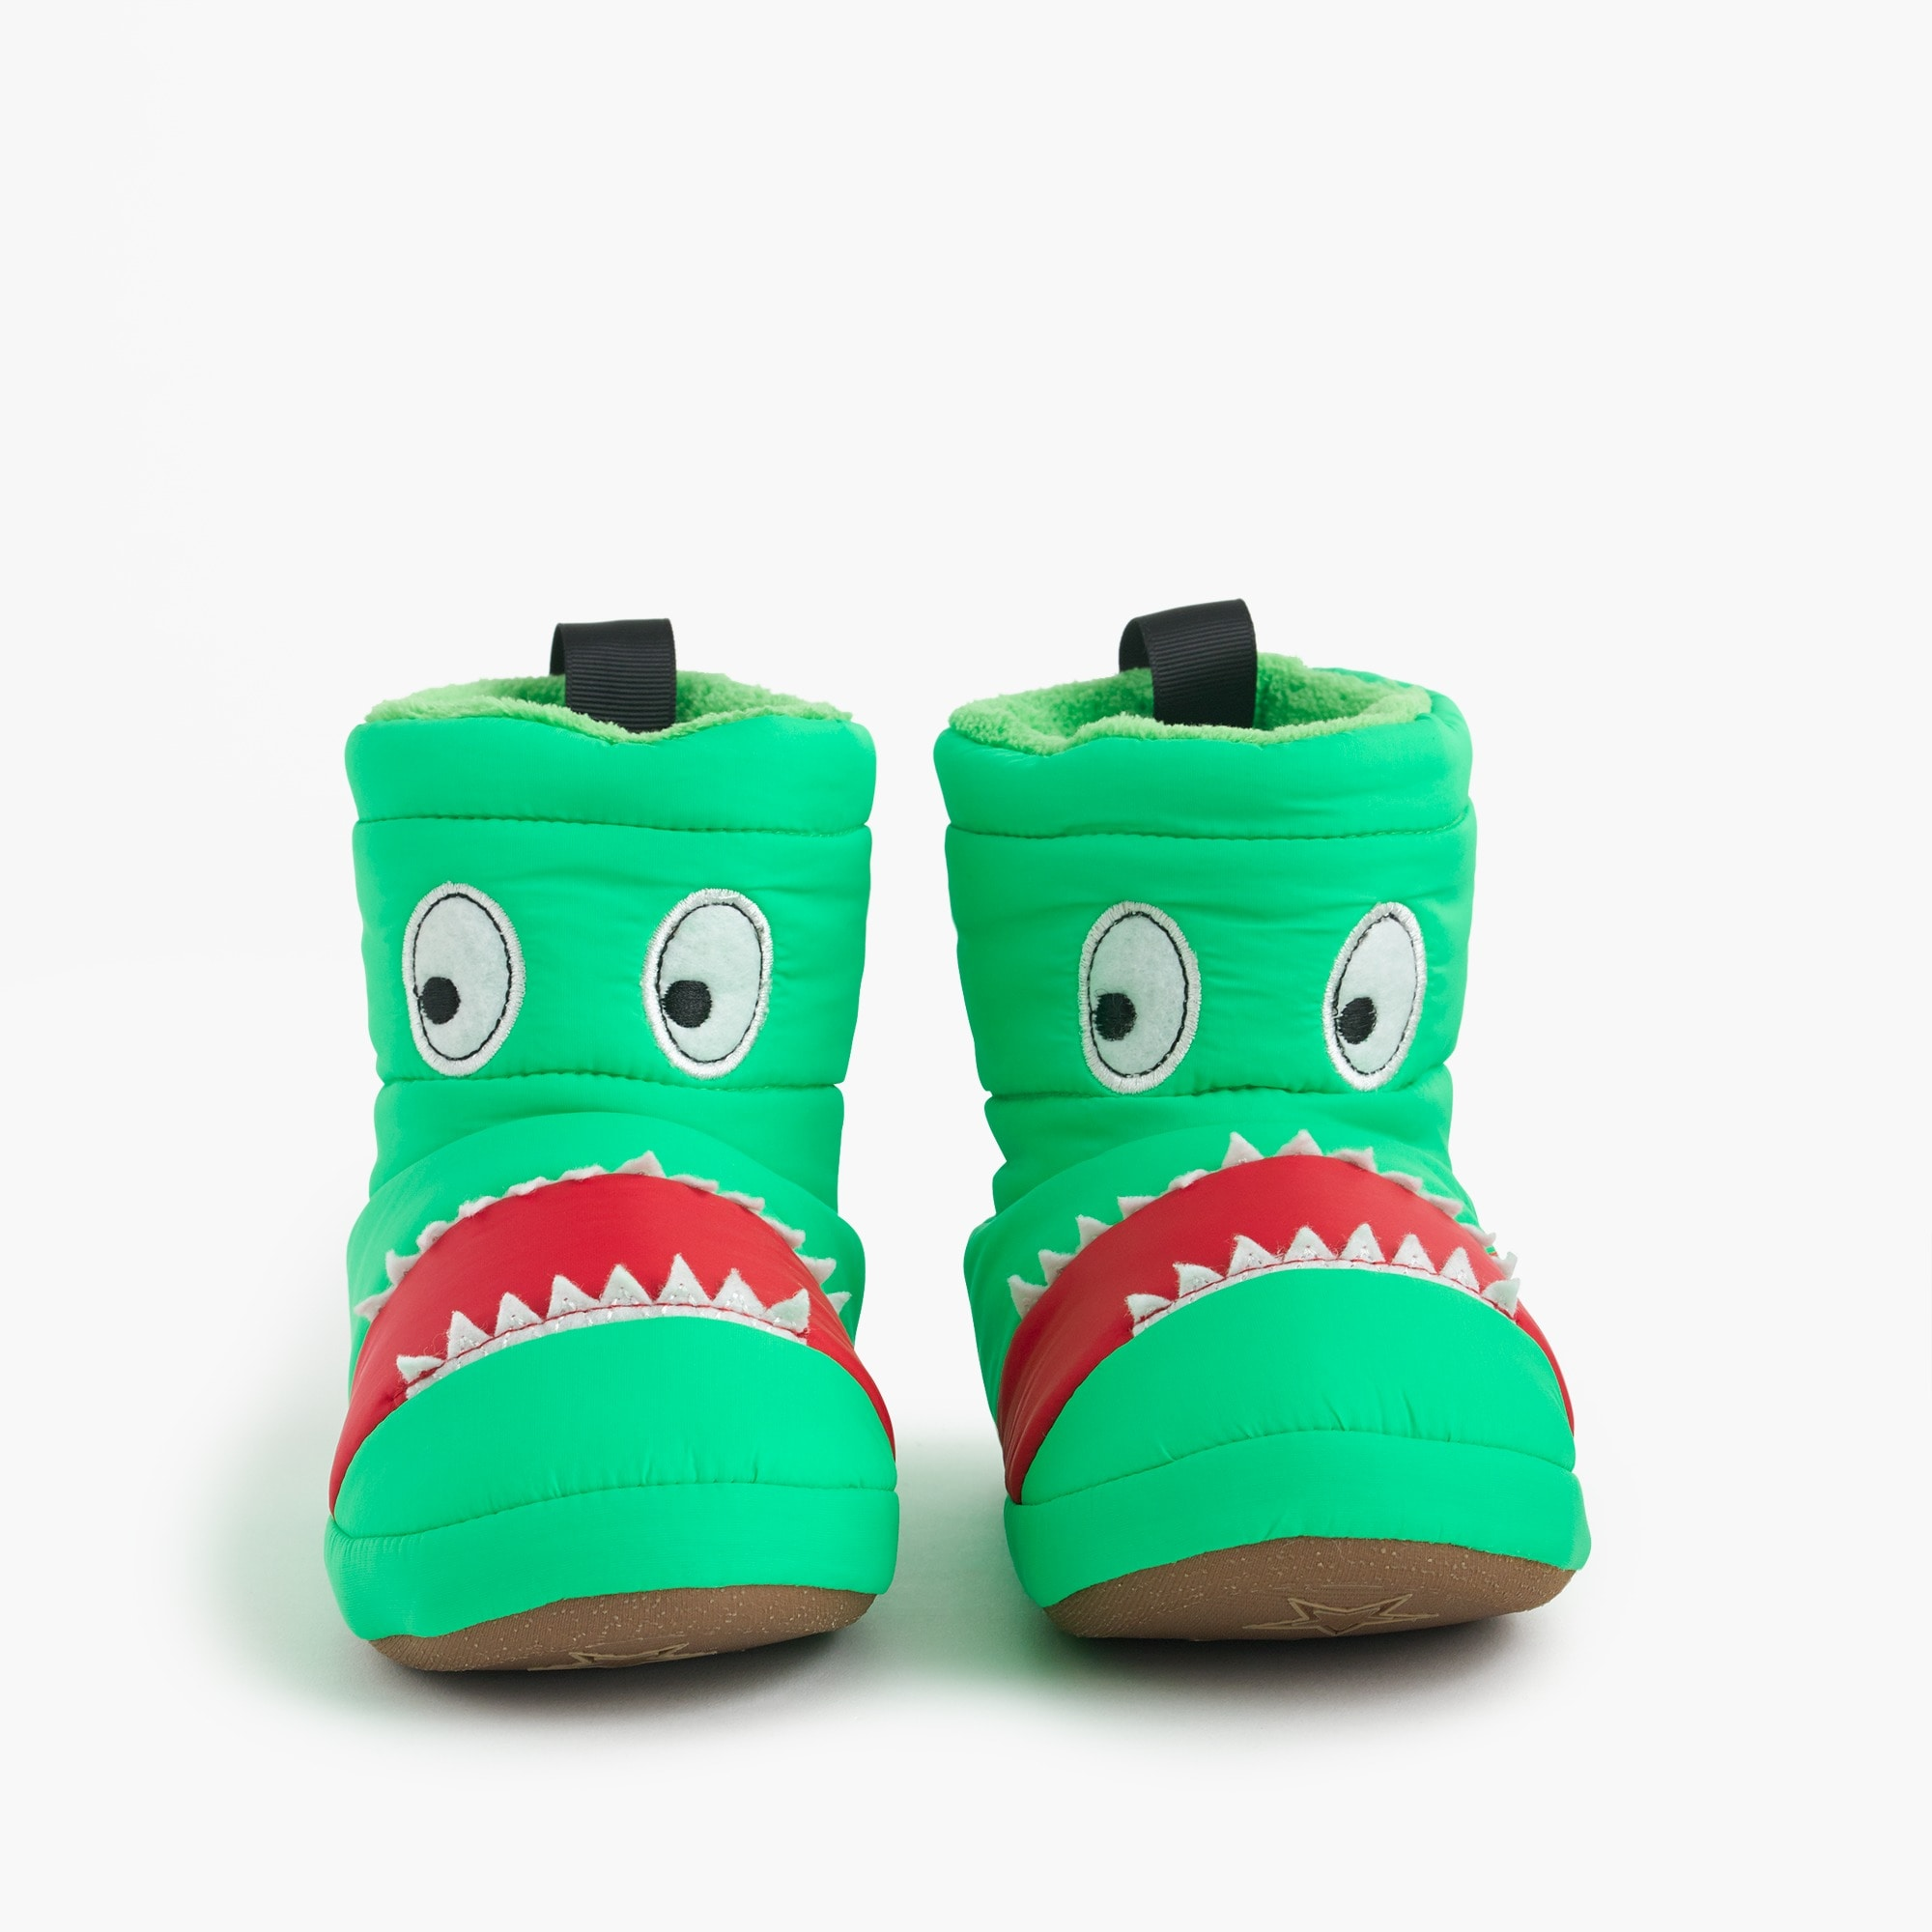 Kids' Max the Monster bootie slippers boy new arrivals c